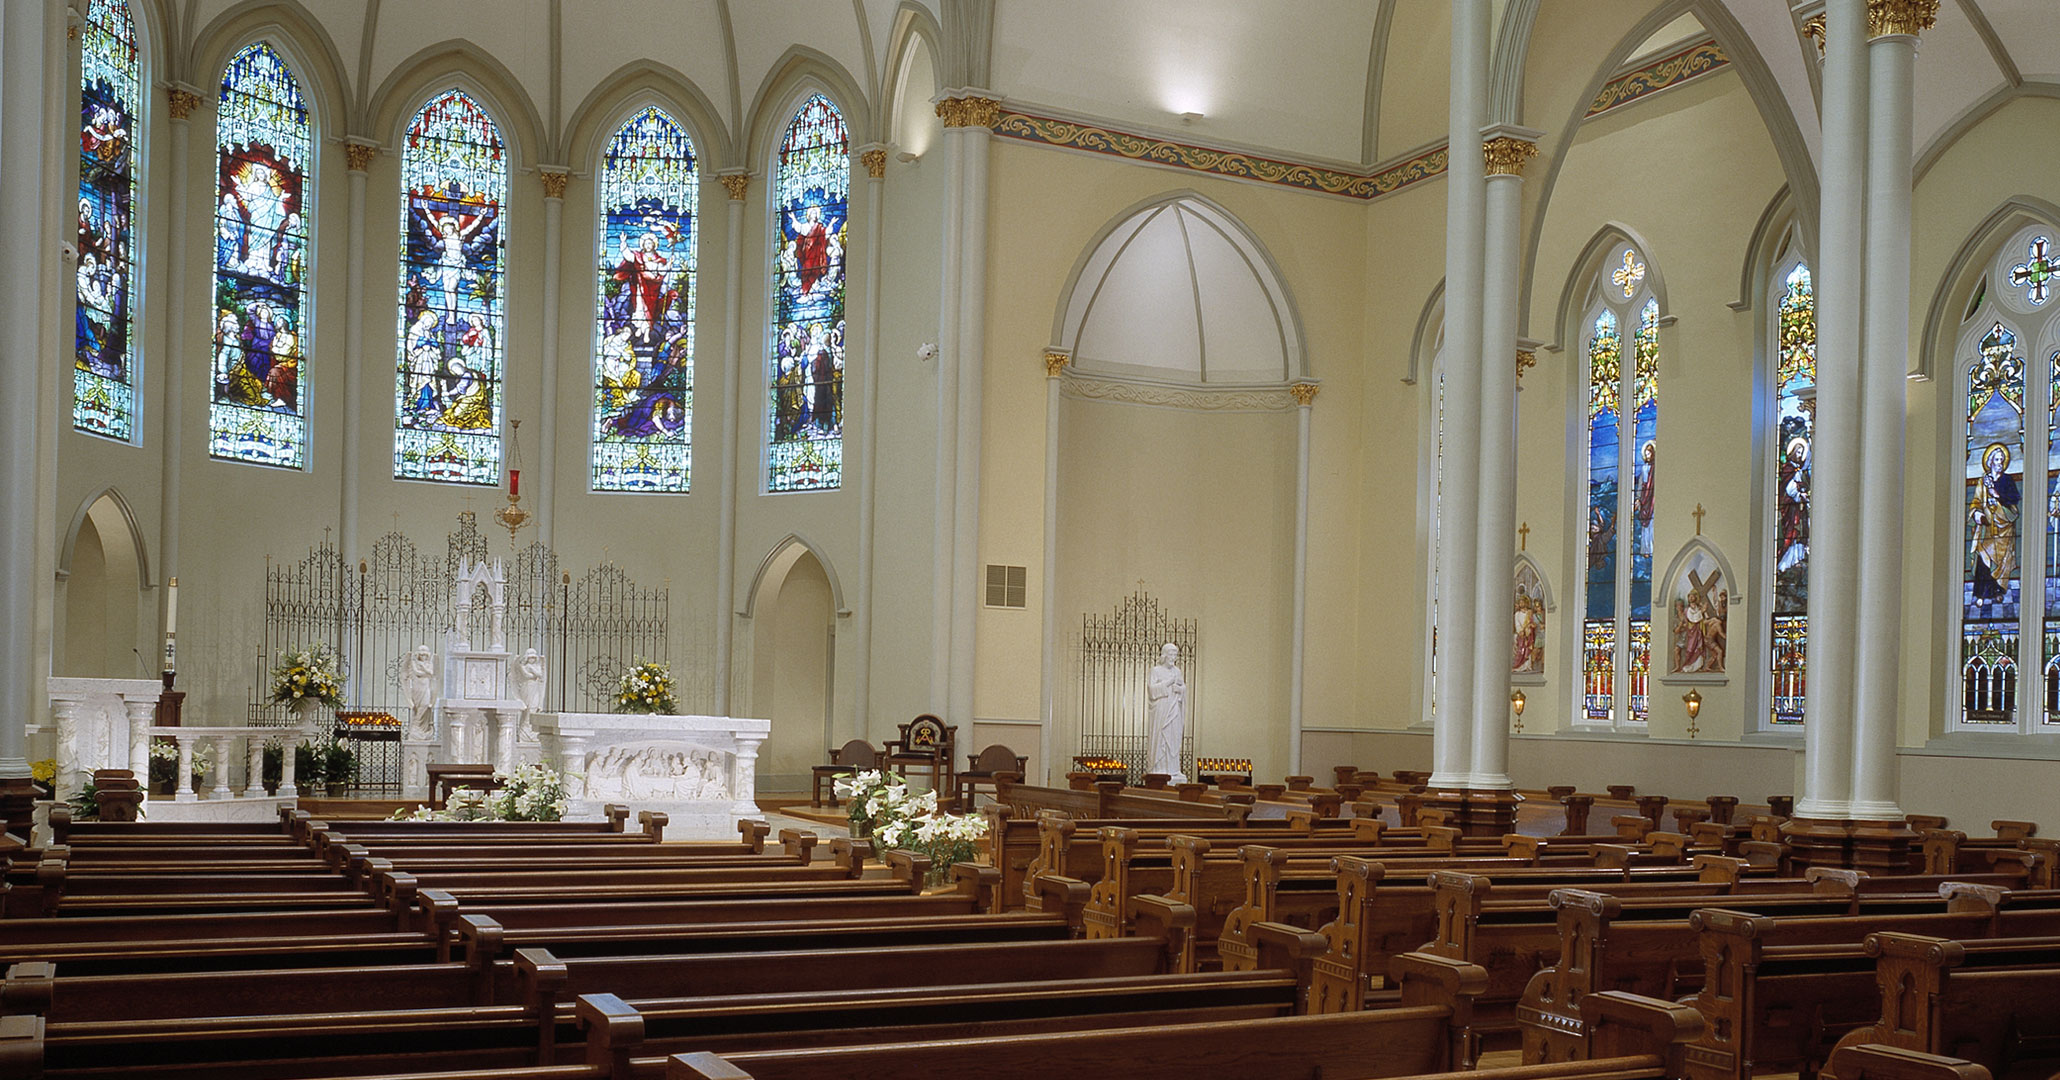 St Peter's Catholic Church in Columbia, SC worked with Catholic Church specialists at Boudreaux to restore the Basilica.